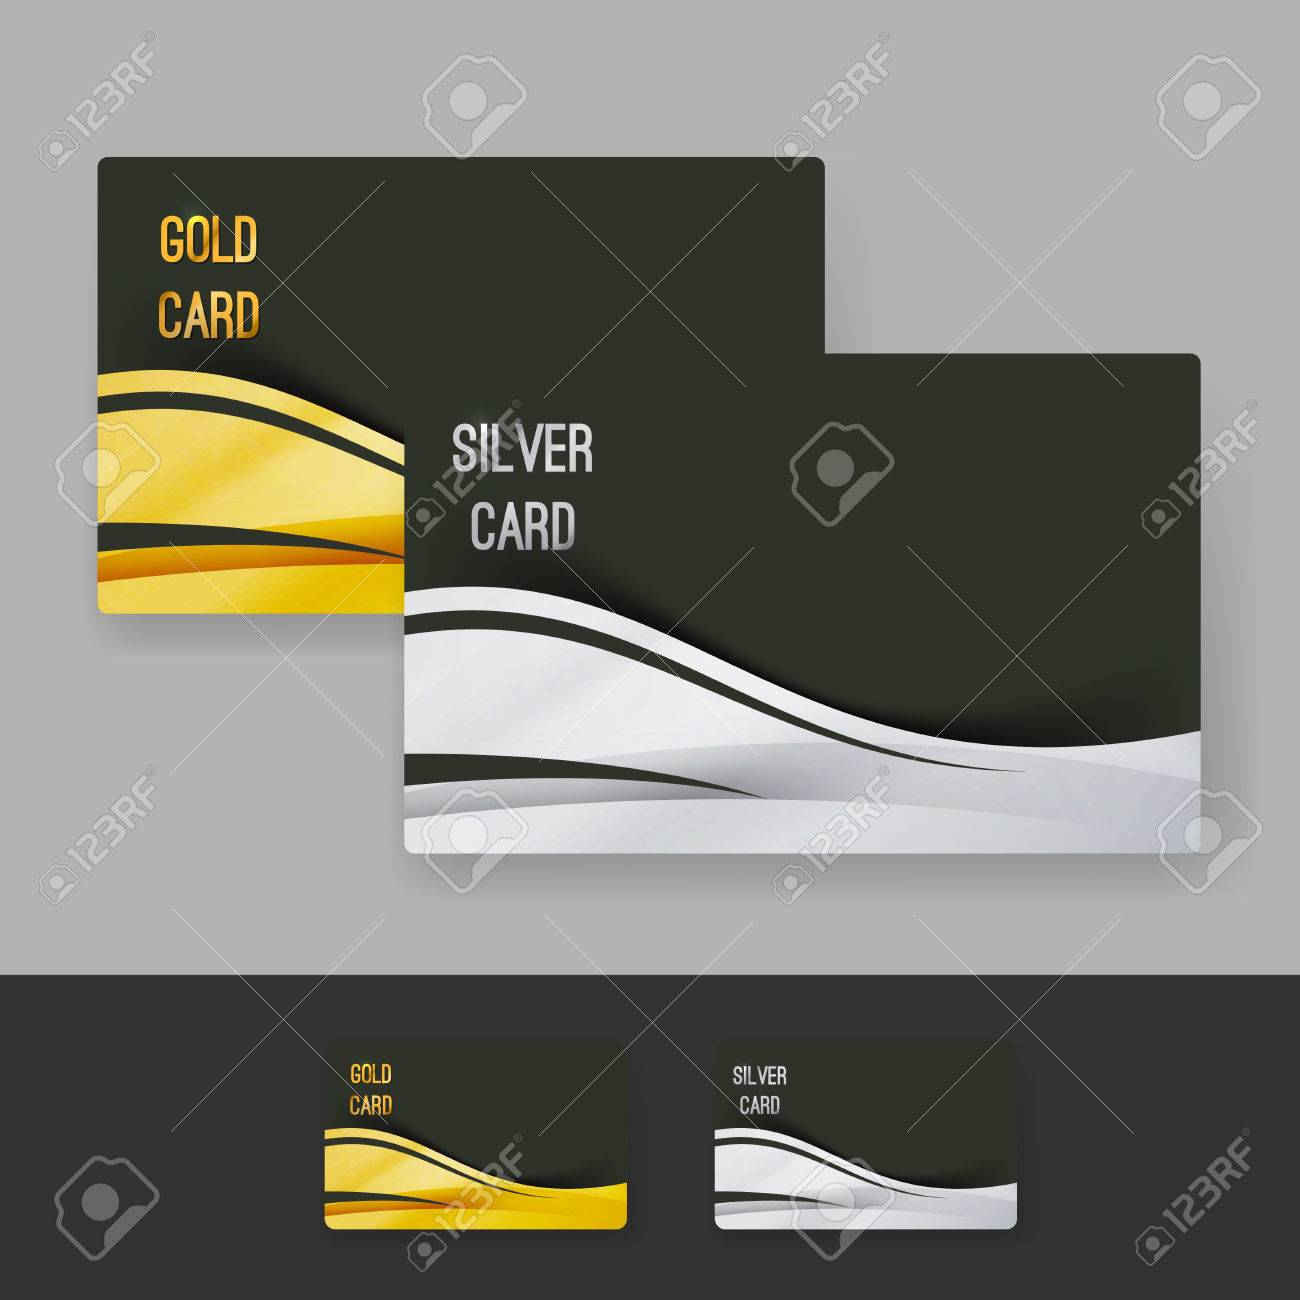 Golden And Silver Membership Luxury Card Design Layout Gift Exclusive  Shopping Club Template. Vector Illustration  Membership Card Design